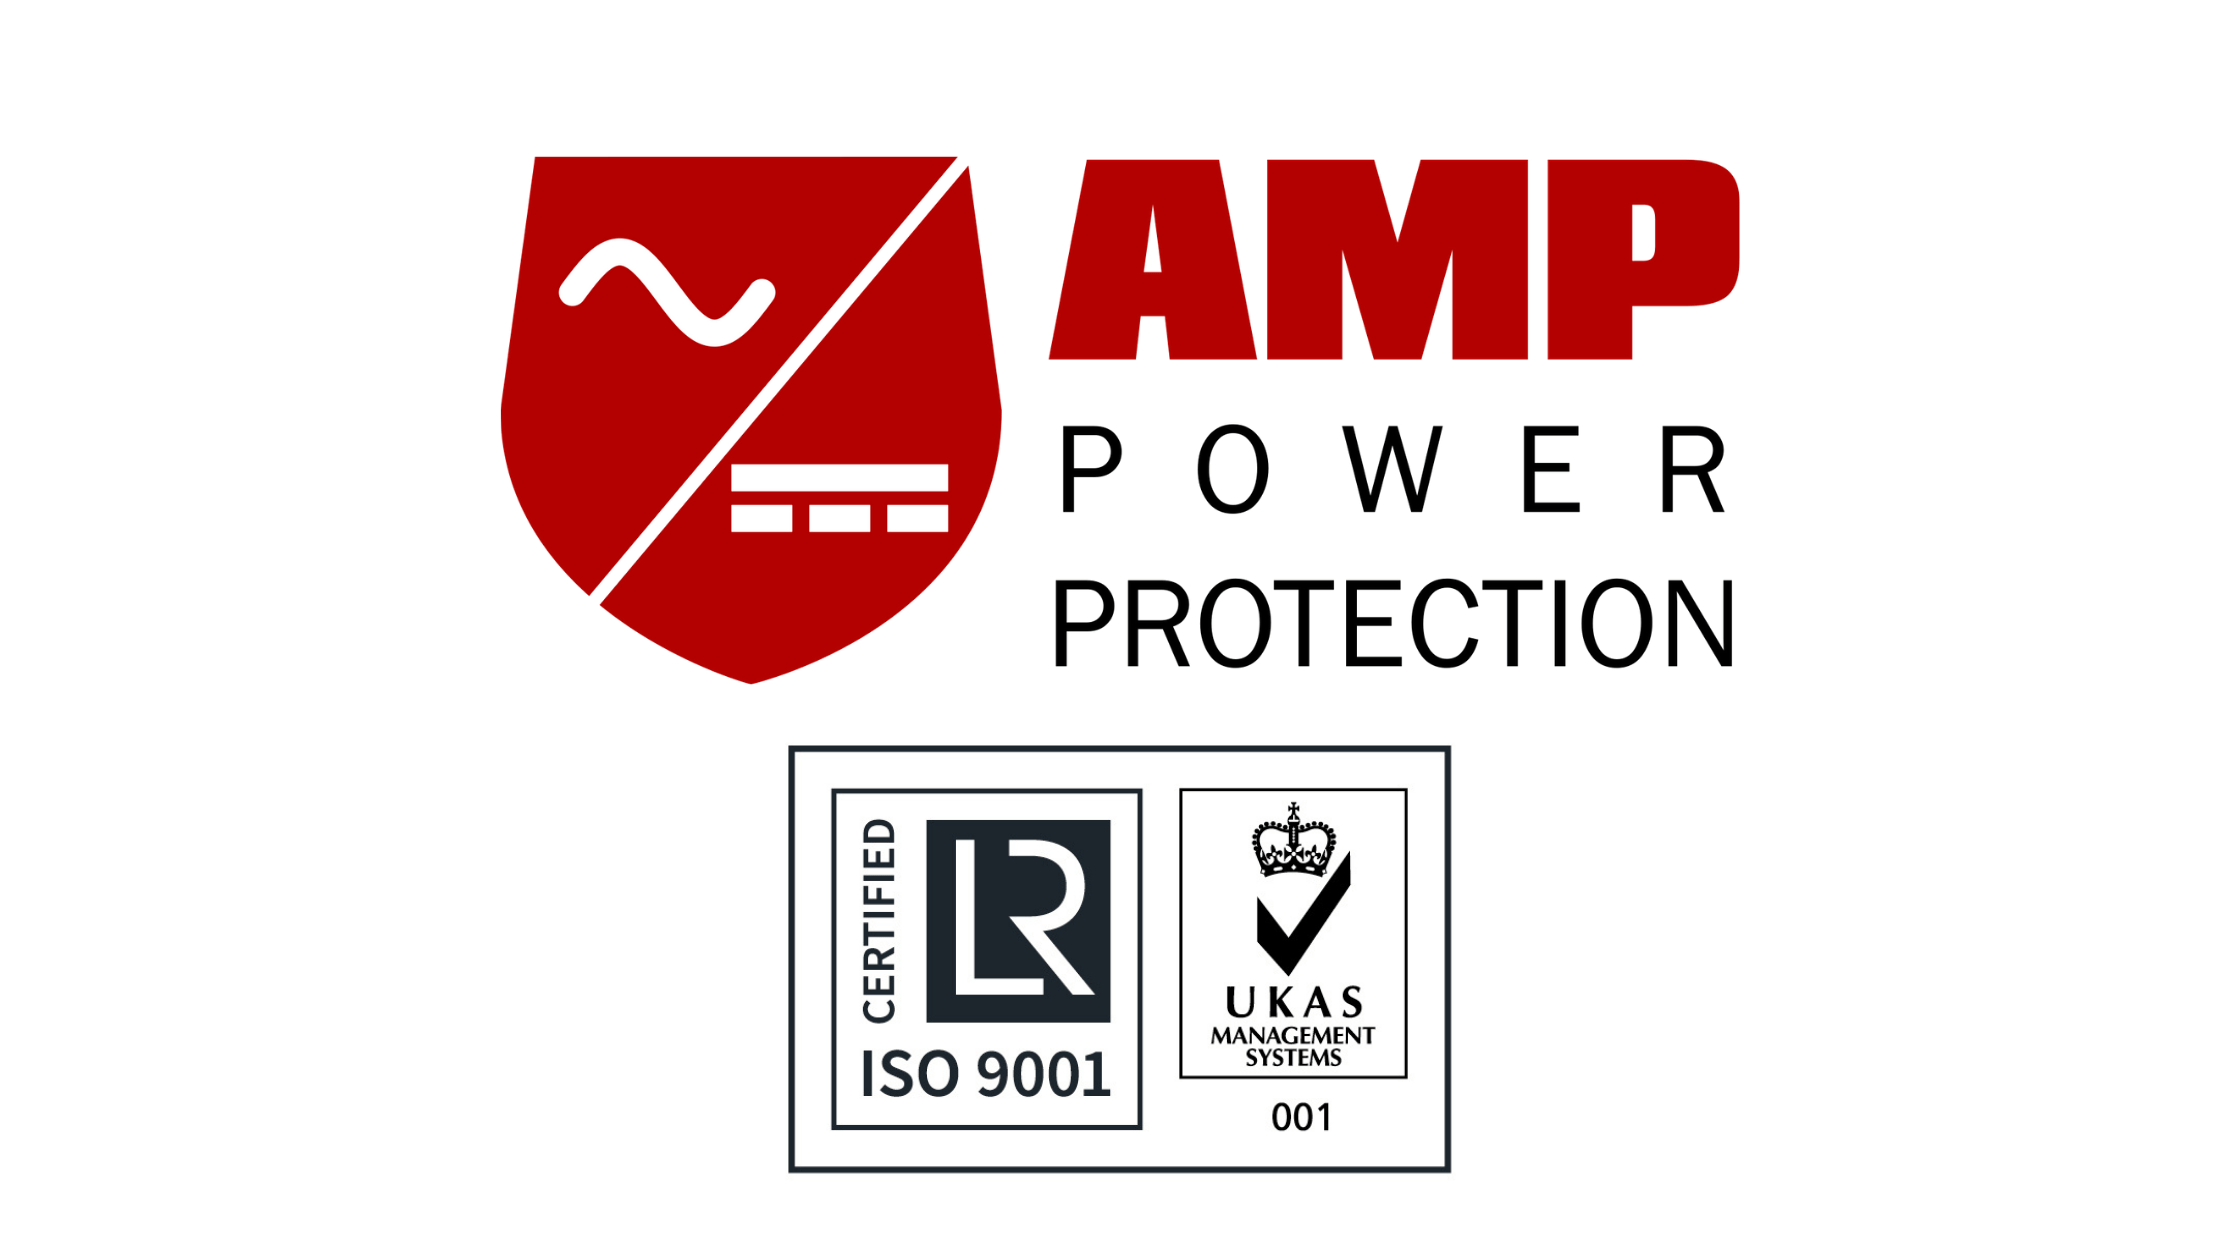 AMP Power Protection Achieve ISO 9001 Approval With Lloyds Register